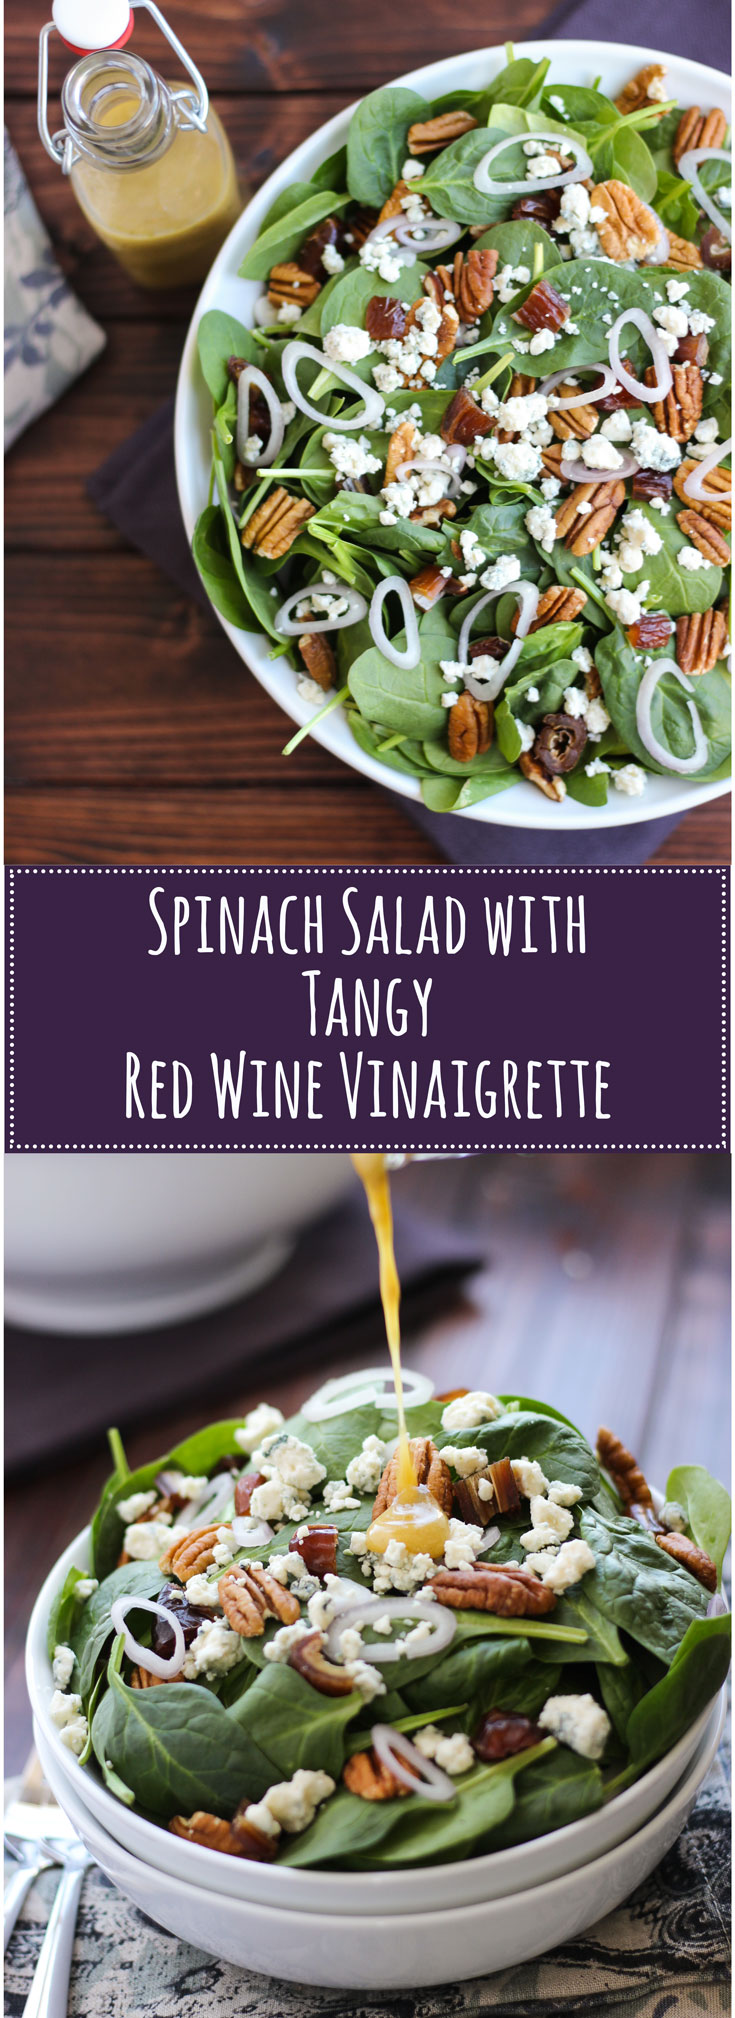 Spinach Salad with Tangy Red Wine Vinaigrette makes healthy delicious - pecans, blue cheese, shallots, and sweet dates tossed with spinach and a tangy, red wine vinegar, and mustard dressing.